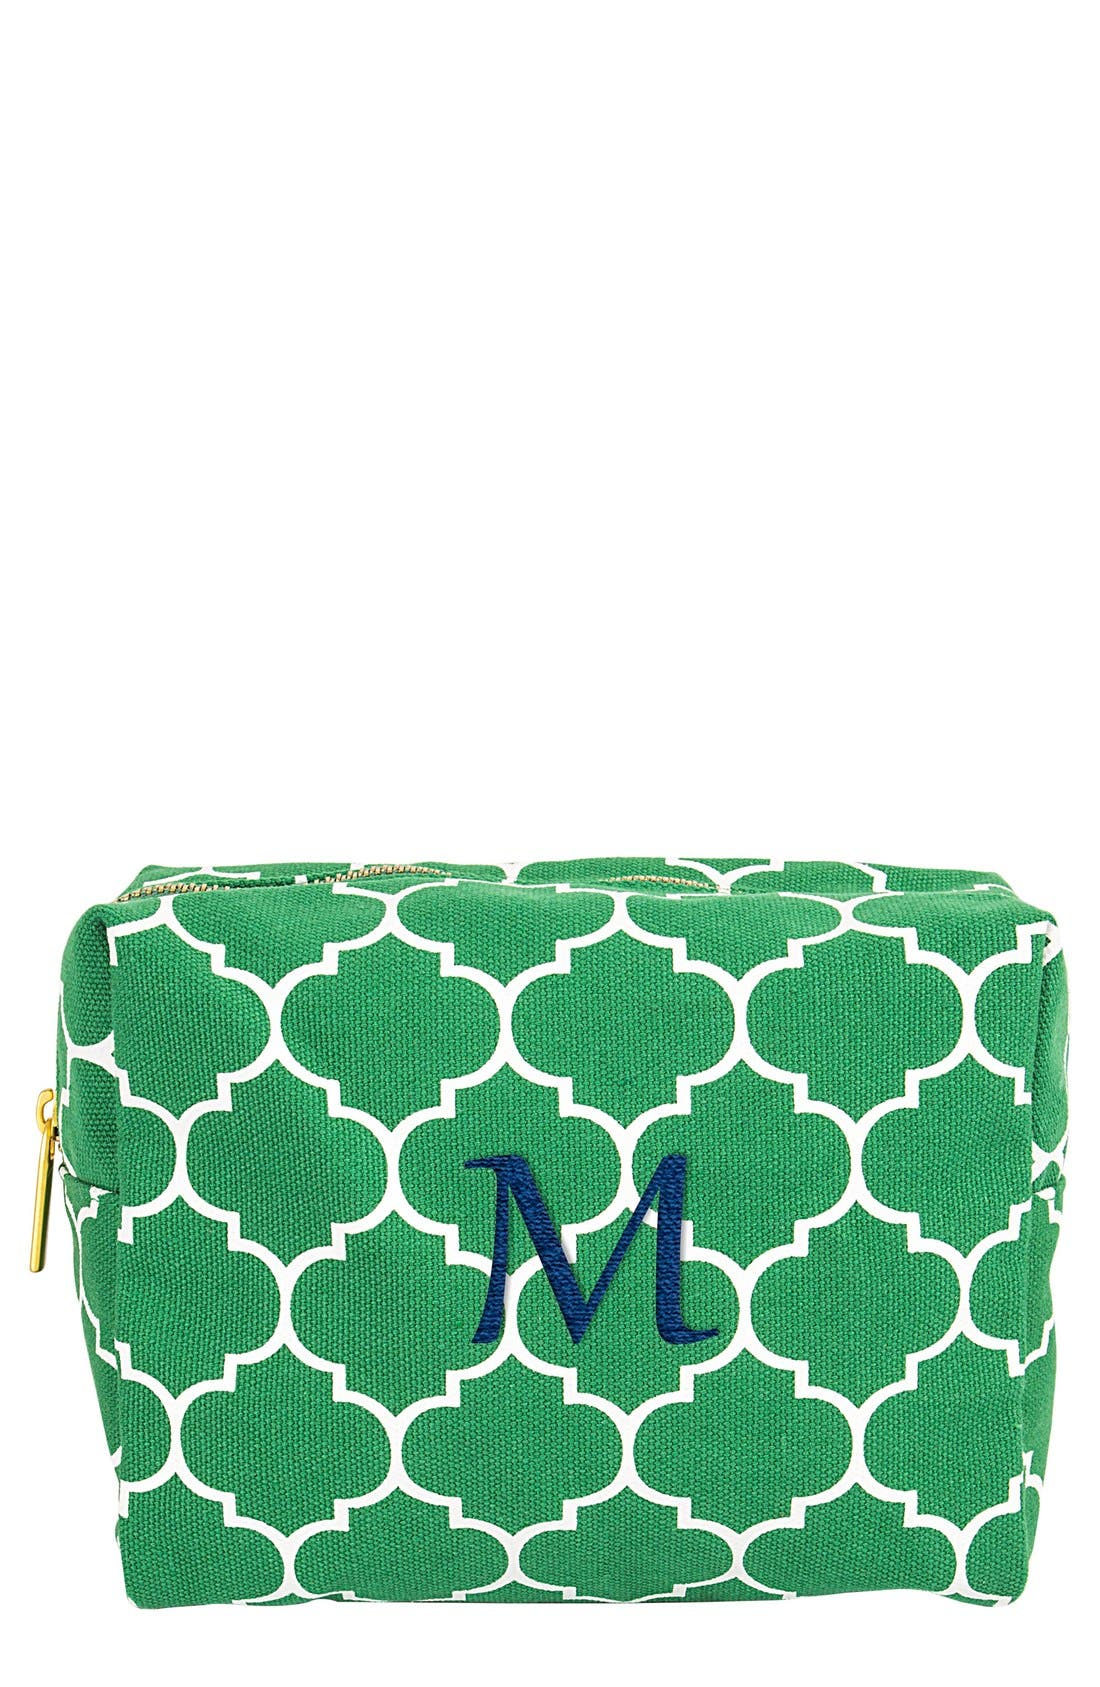 Monogram Cosmetics Bag,                             Main thumbnail 1, color,                             Green-M